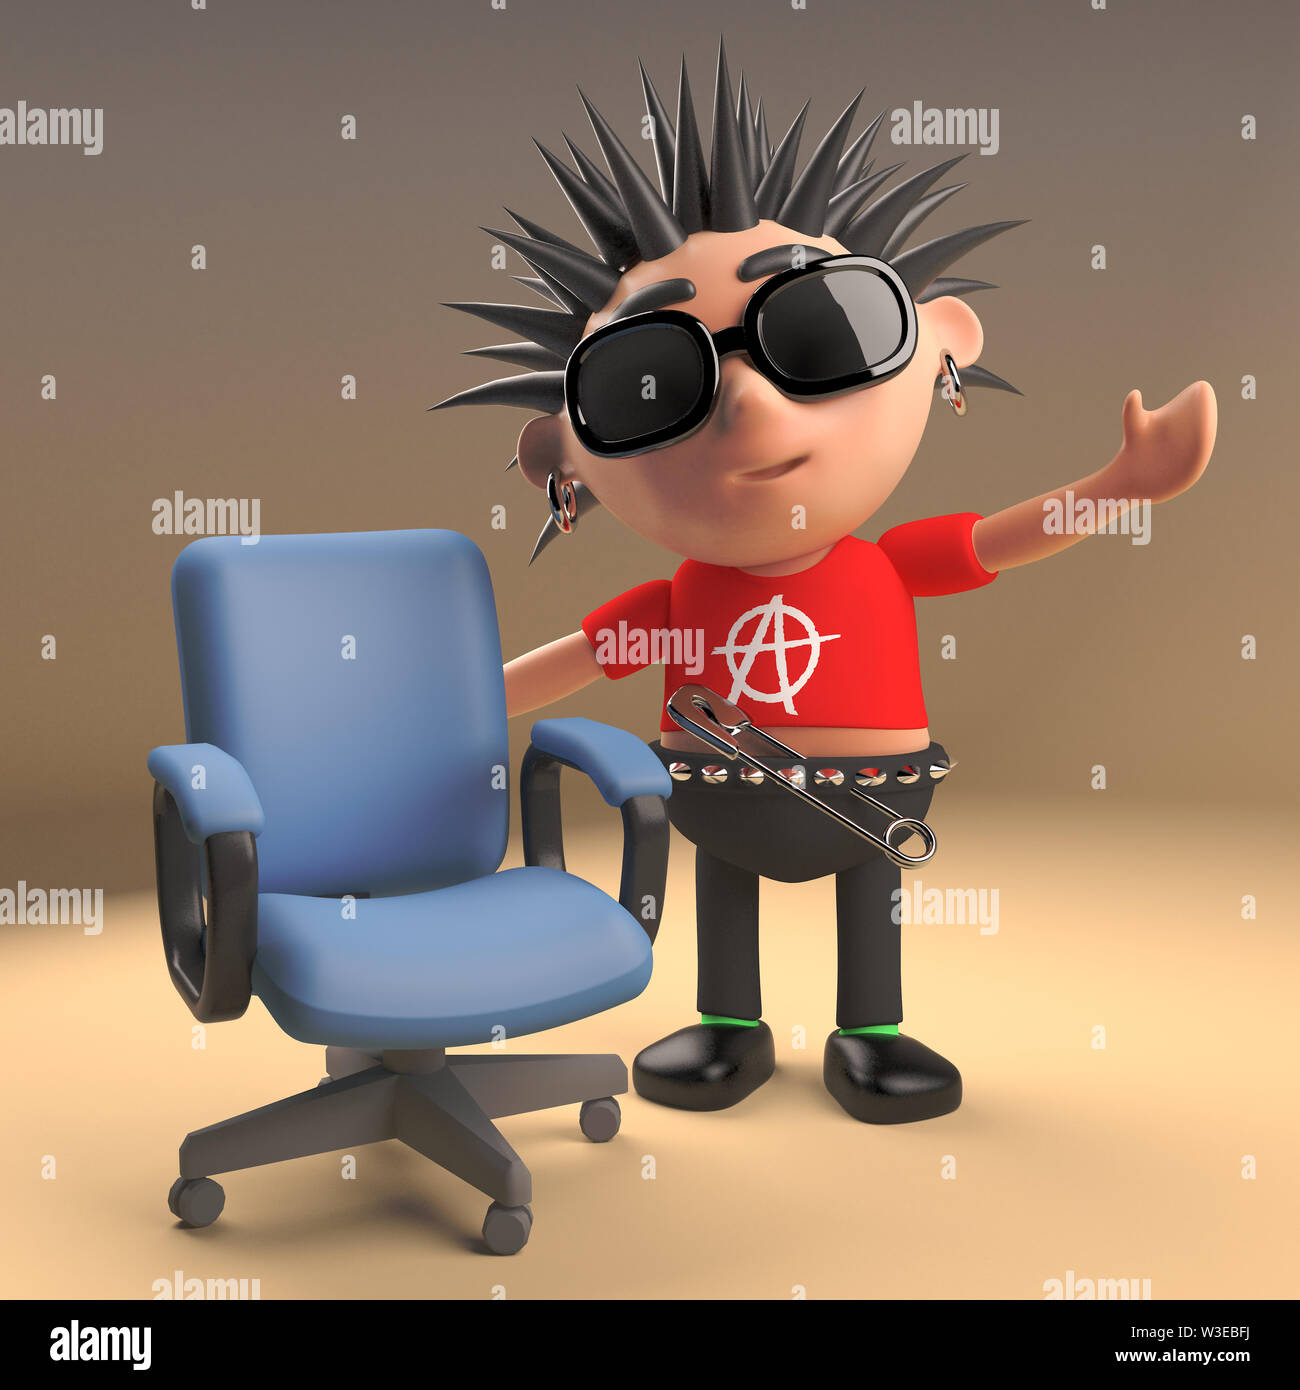 Funny Cartoon 3d Punk Rocker Character With Spikey Hair Standing Next To An Empty Chair 3d Illustration Render Stock Photo Alamy